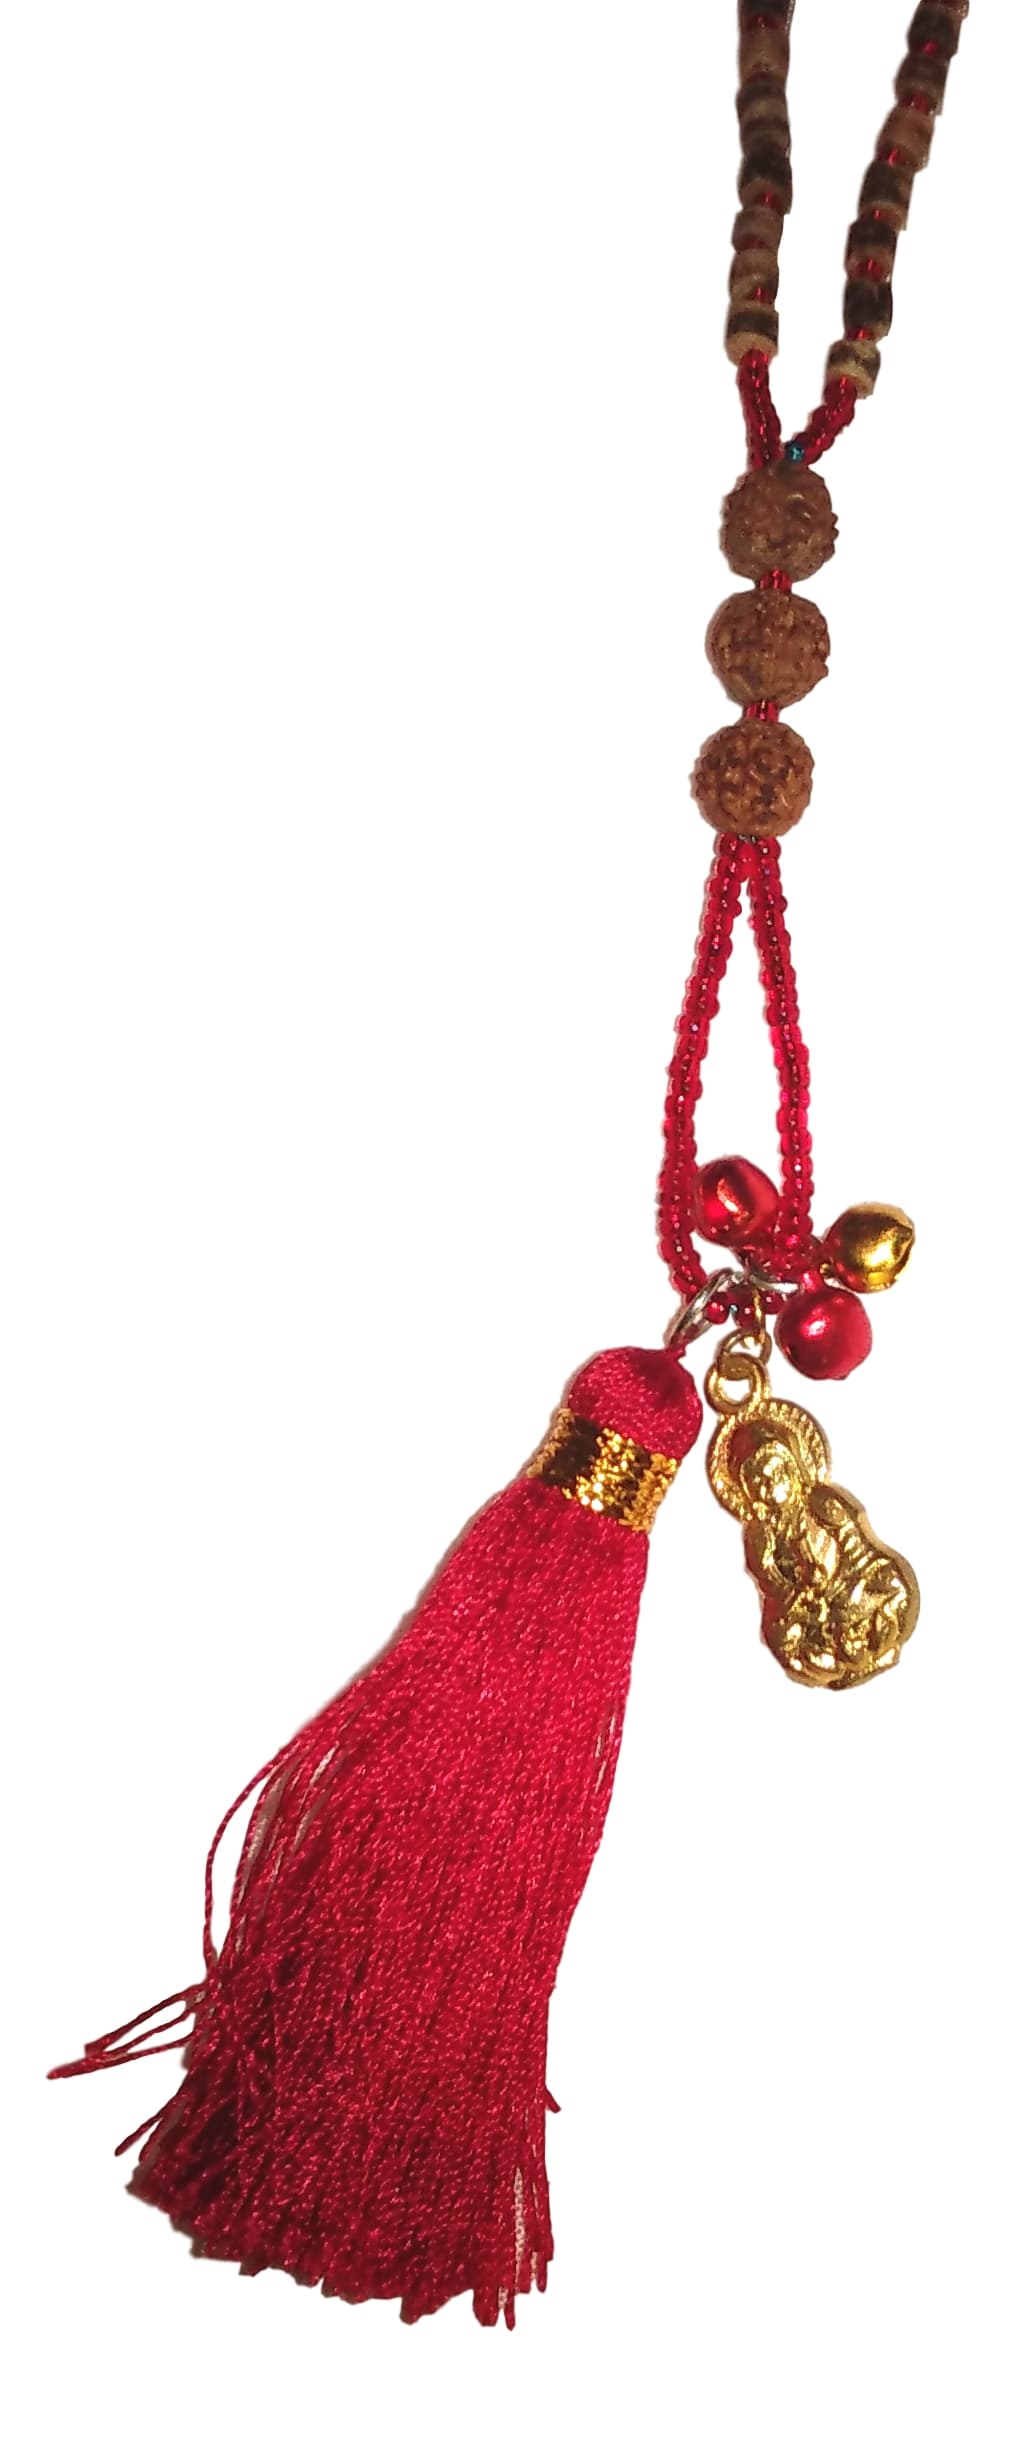 Jewelry - Mala Necklace with Budha, Bells, and Tassel - Red